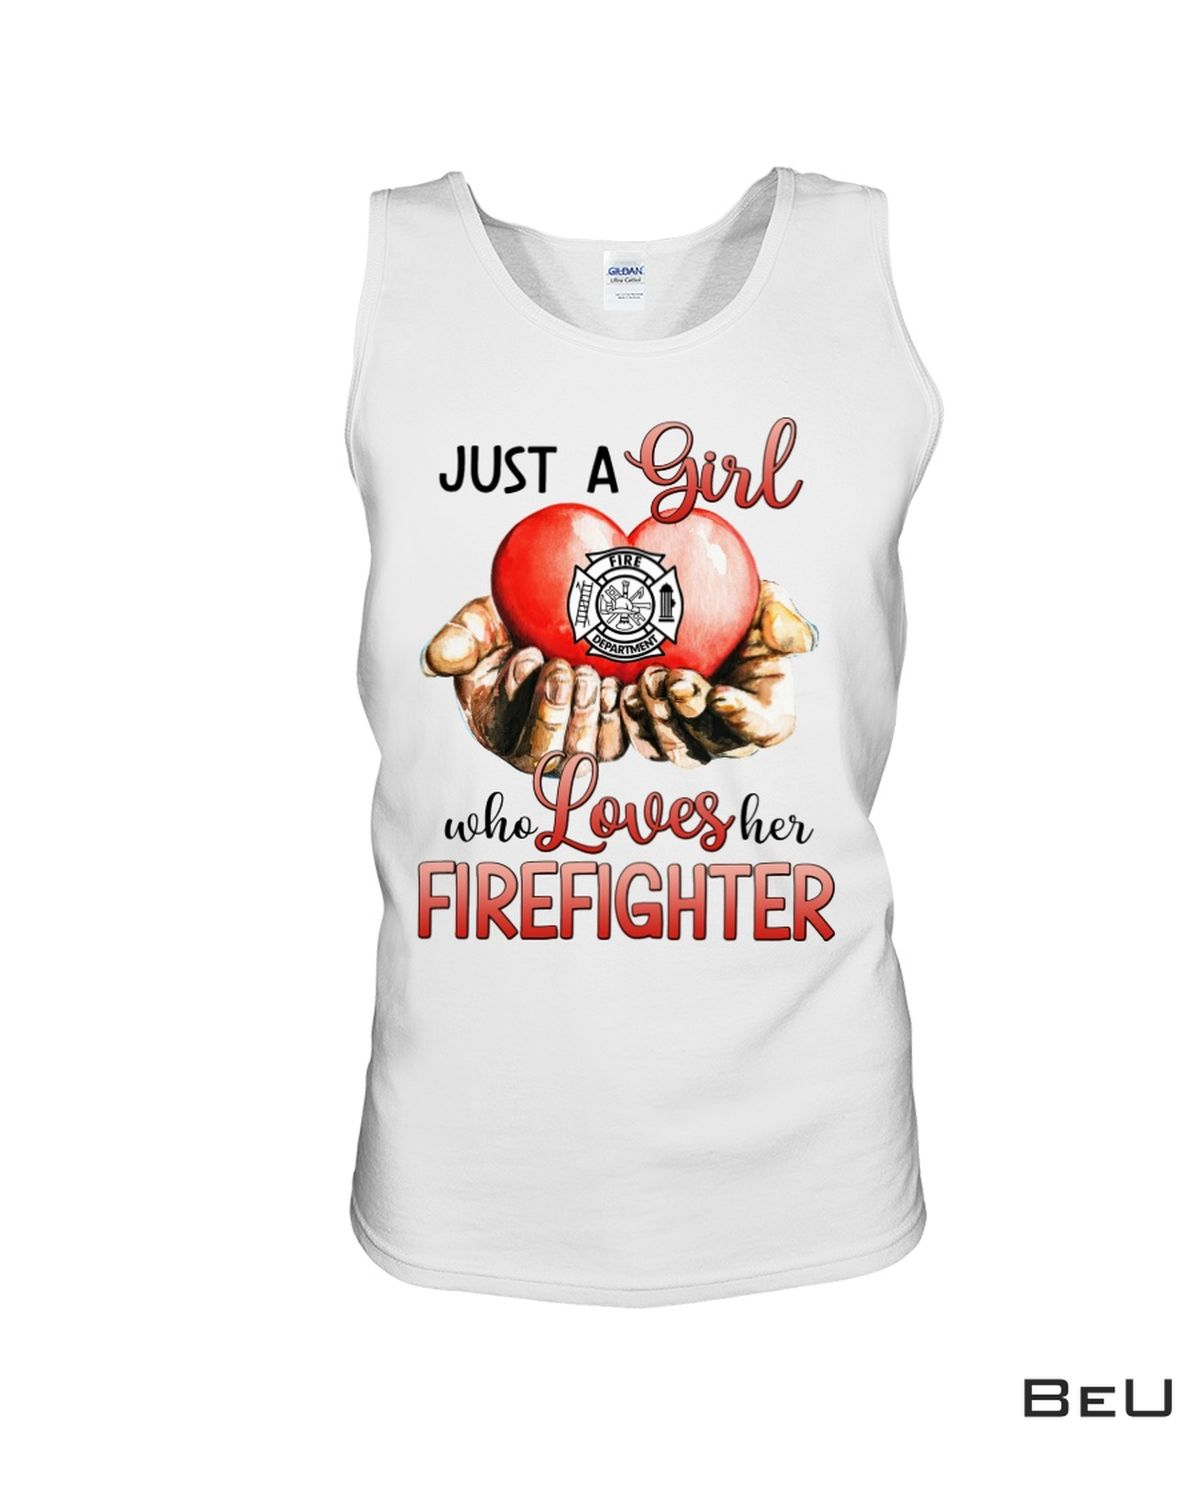 Just A Girl Who Loves Her Firefighter Shirt x